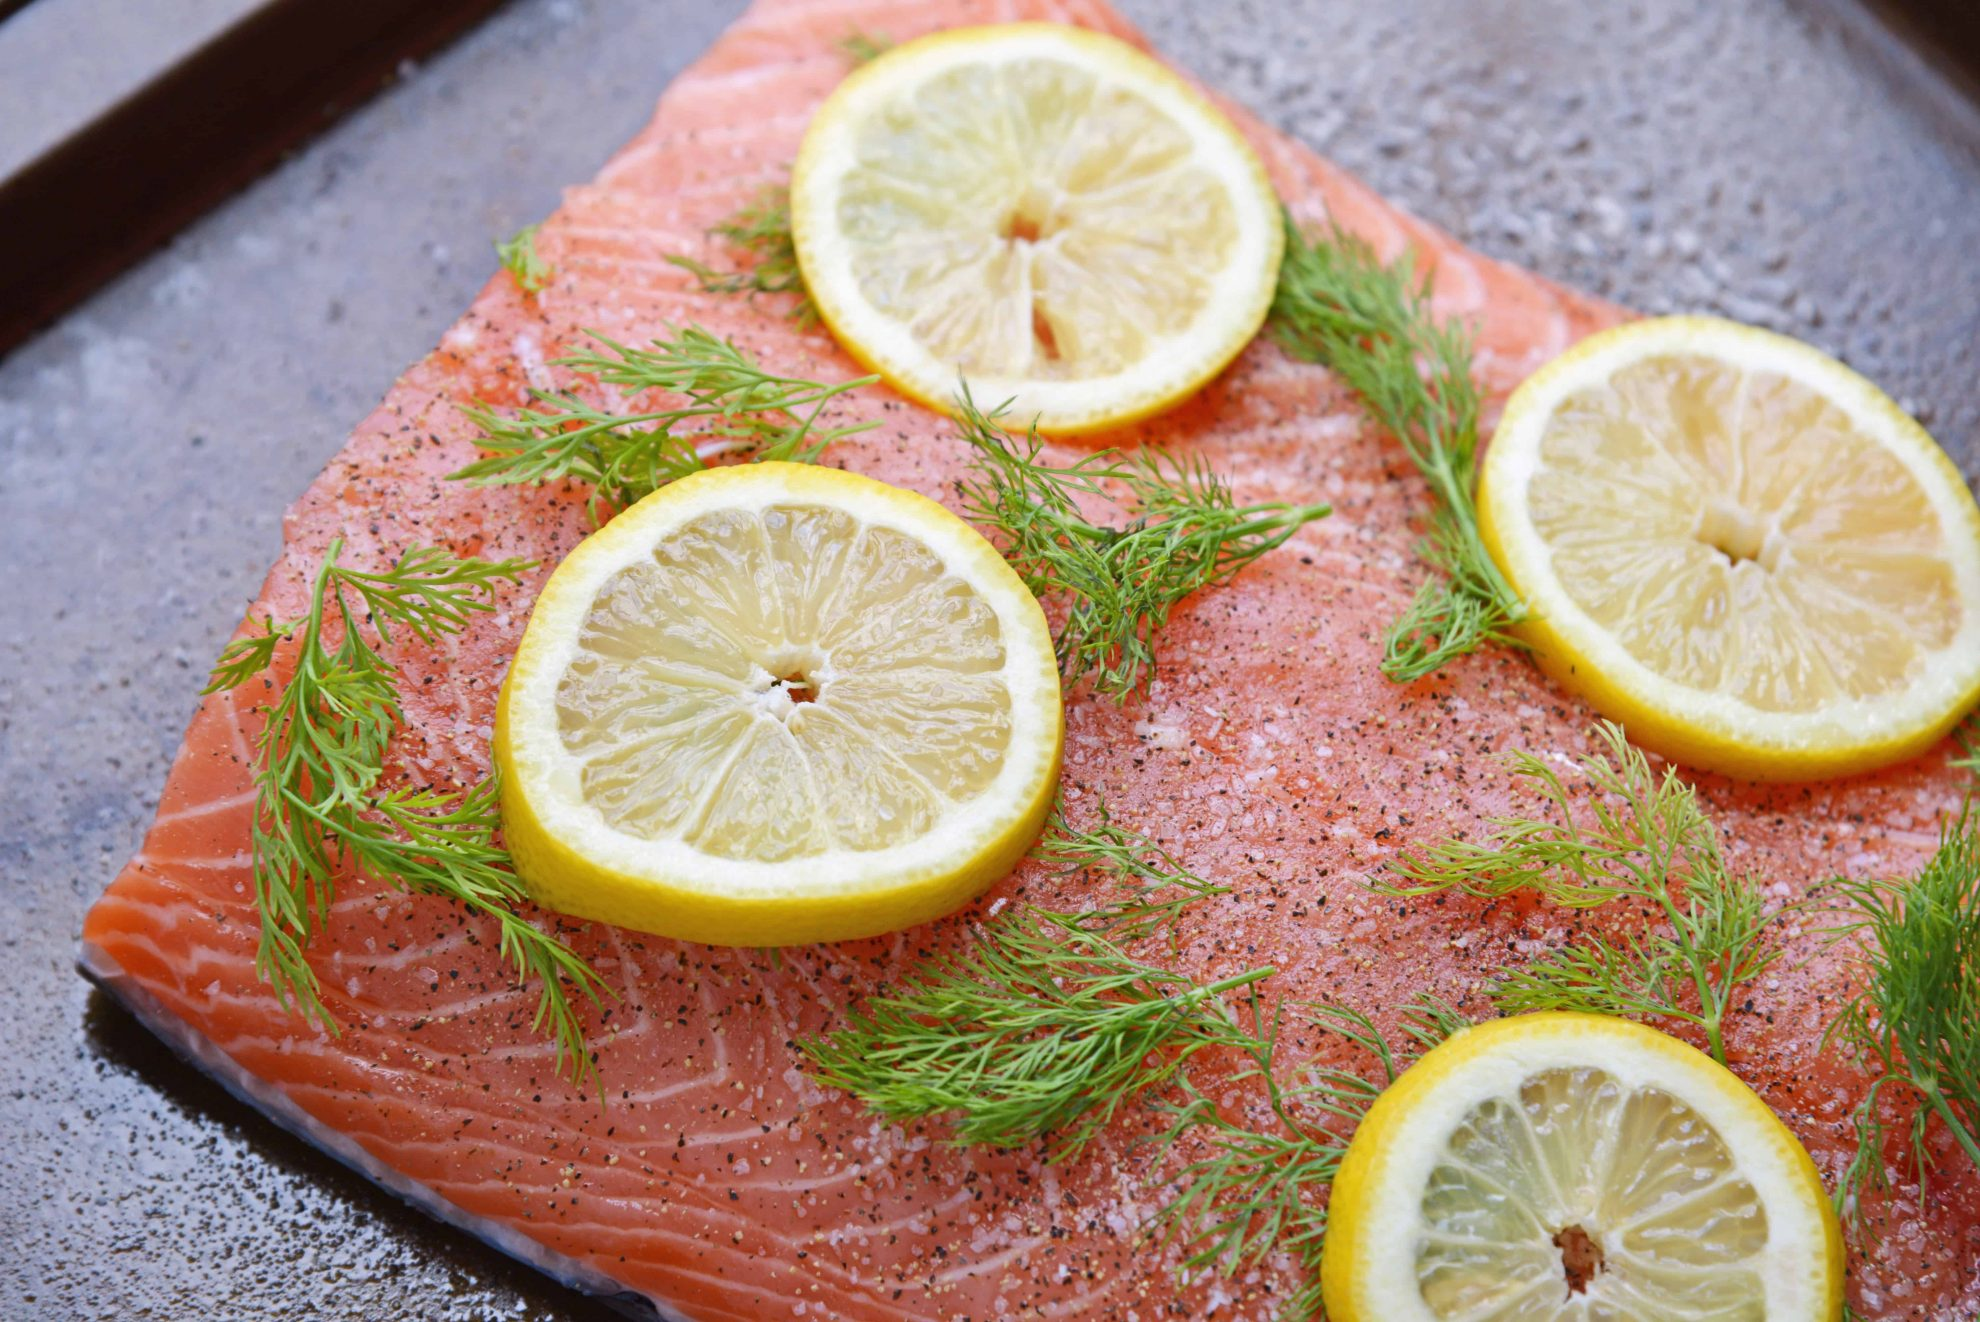 Raw salmon with fresh dill and lemons